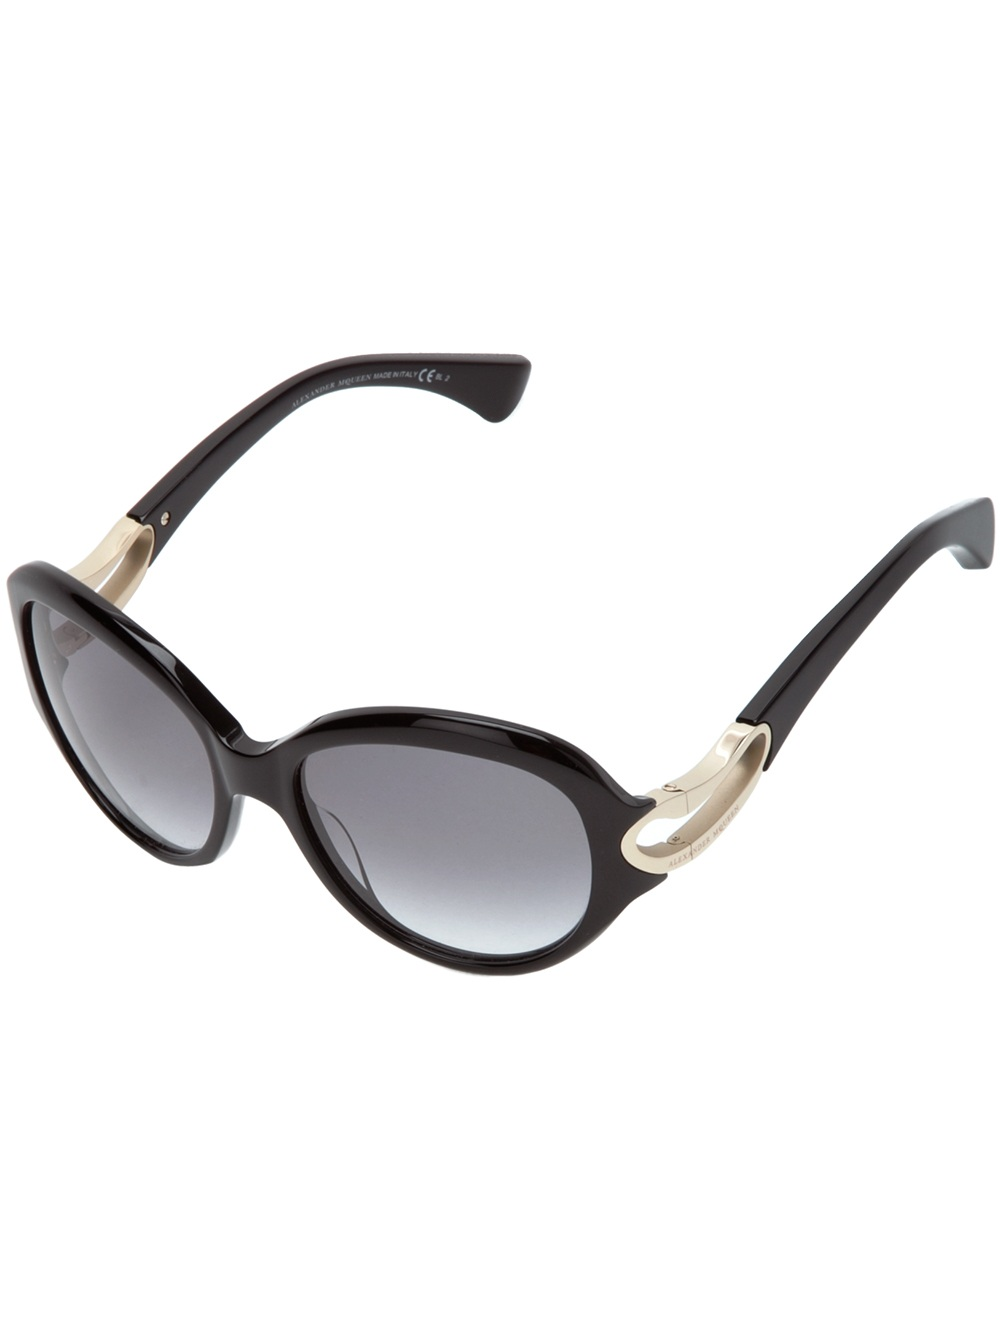 adf96361ea Lyst - Alexander Mcqueen Oval Sunglases with Case in Black